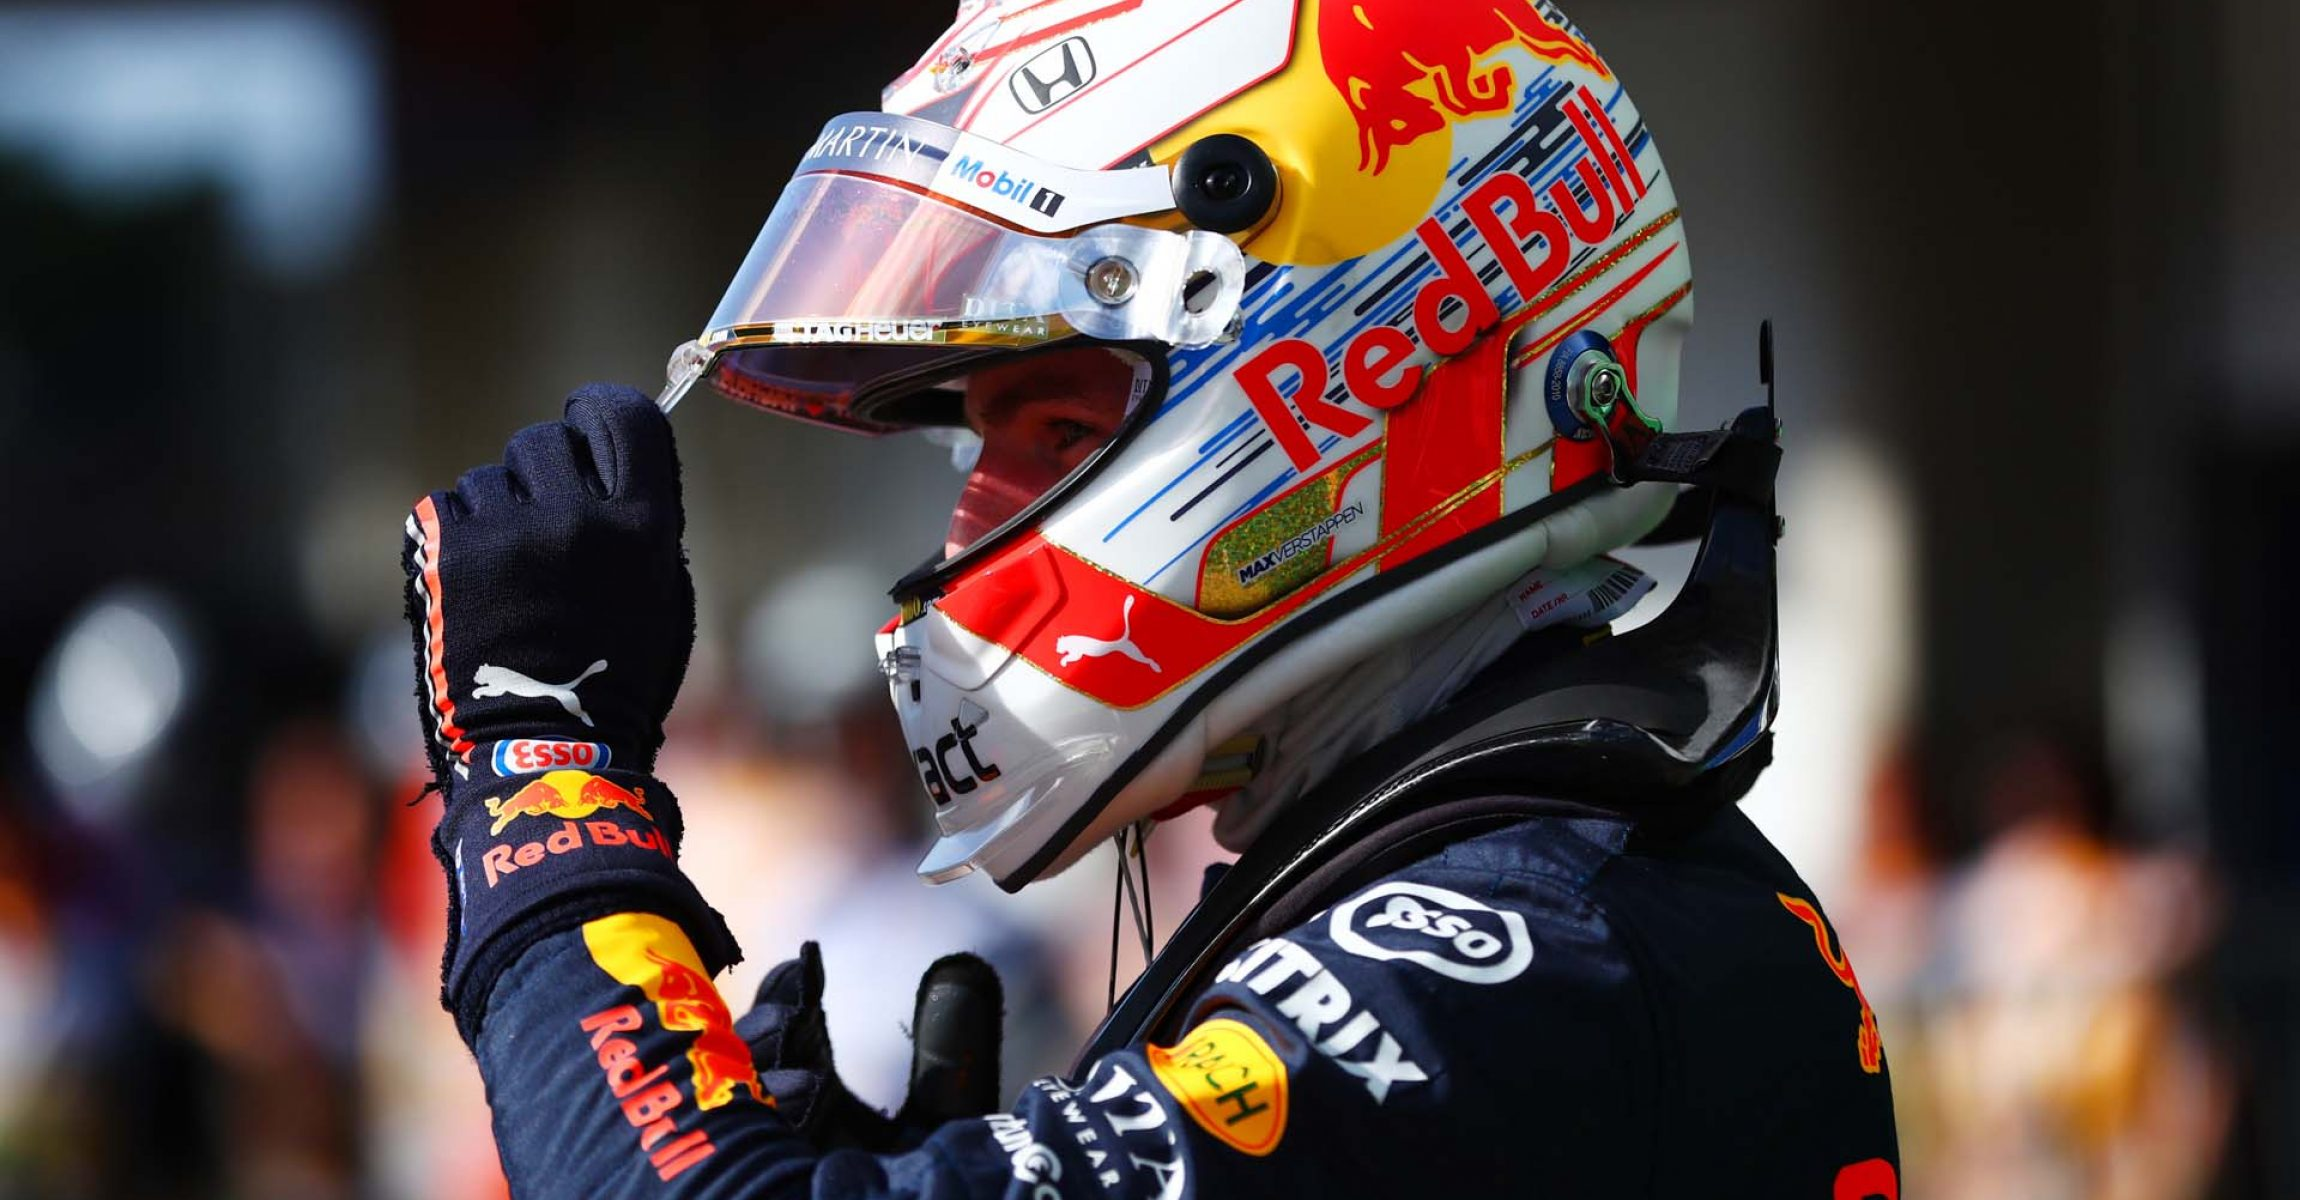 SAO PAULO, BRAZIL - NOVEMBER 16: Pole position qualifier Max Verstappen of Netherlands and Red Bull Racing celebrates in parc ferme during qualifying for the F1 Grand Prix of Brazil at Autodromo Jose Carlos Pace on November 16, 2019 in Sao Paulo, Brazil. (Photo by Dan Istitene/Getty Images) // Getty Images / Red Bull Content Pool // AP-2273BZH8S1W11 // Usage for editorial use only //